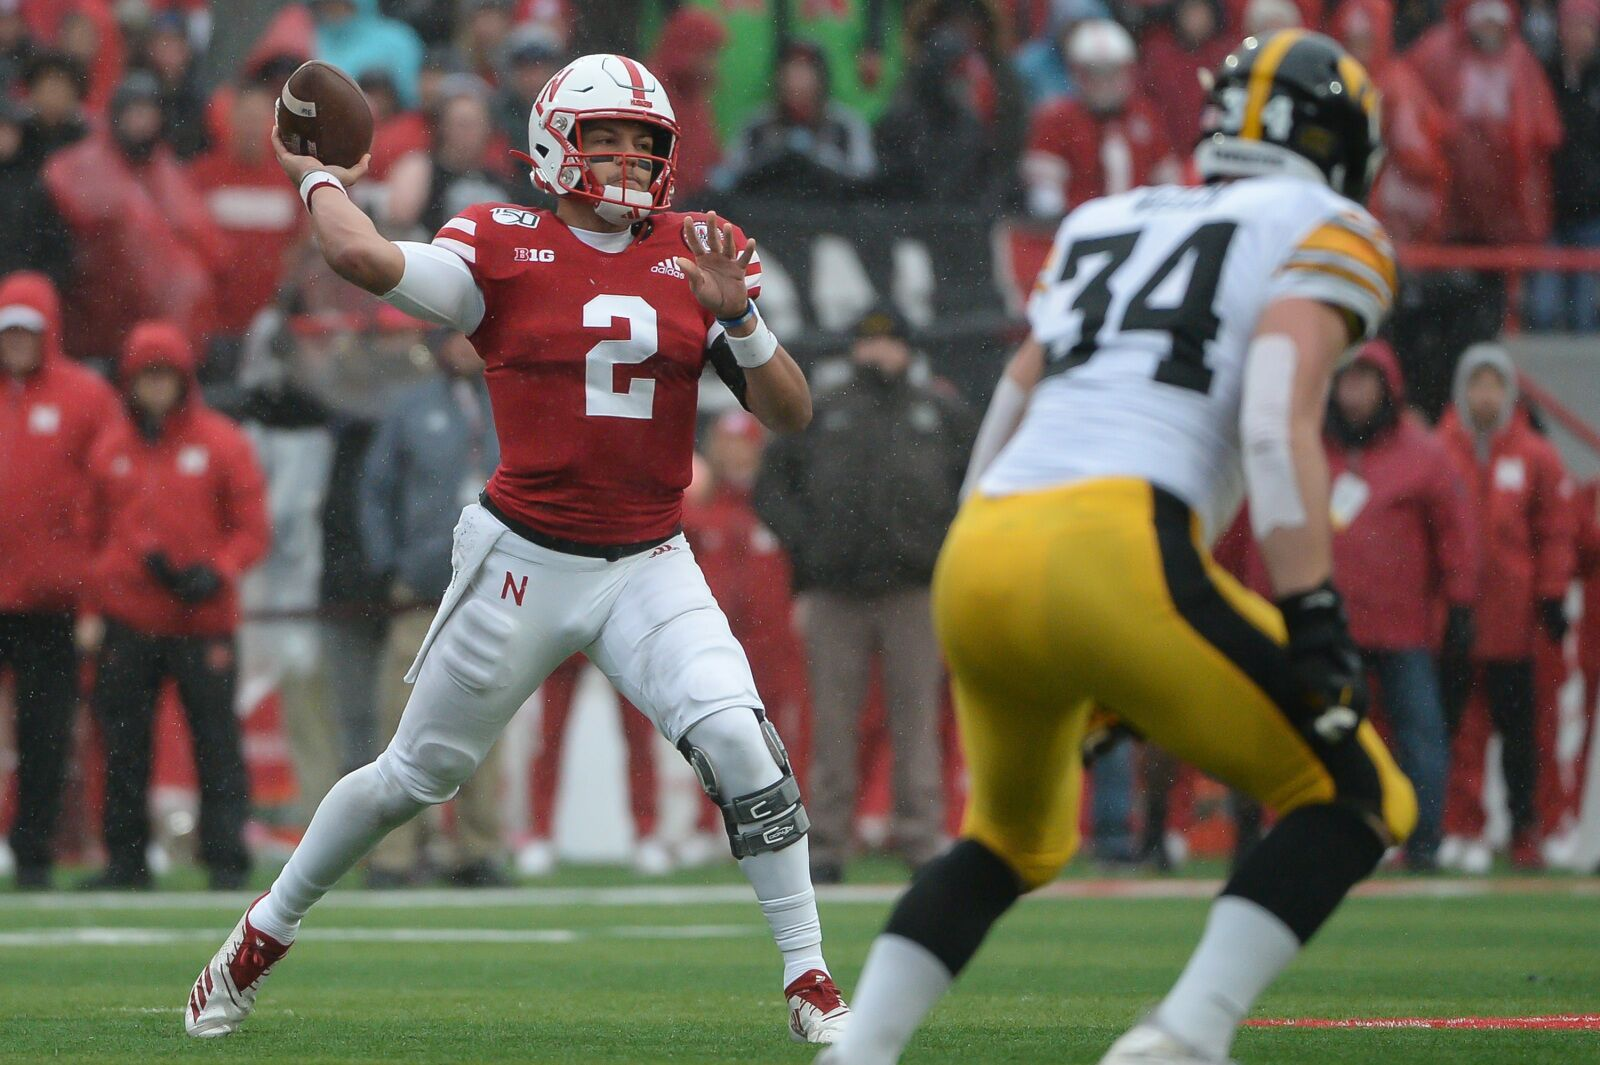 Nebraska Football Quarterback Competition Is A Must In 2020